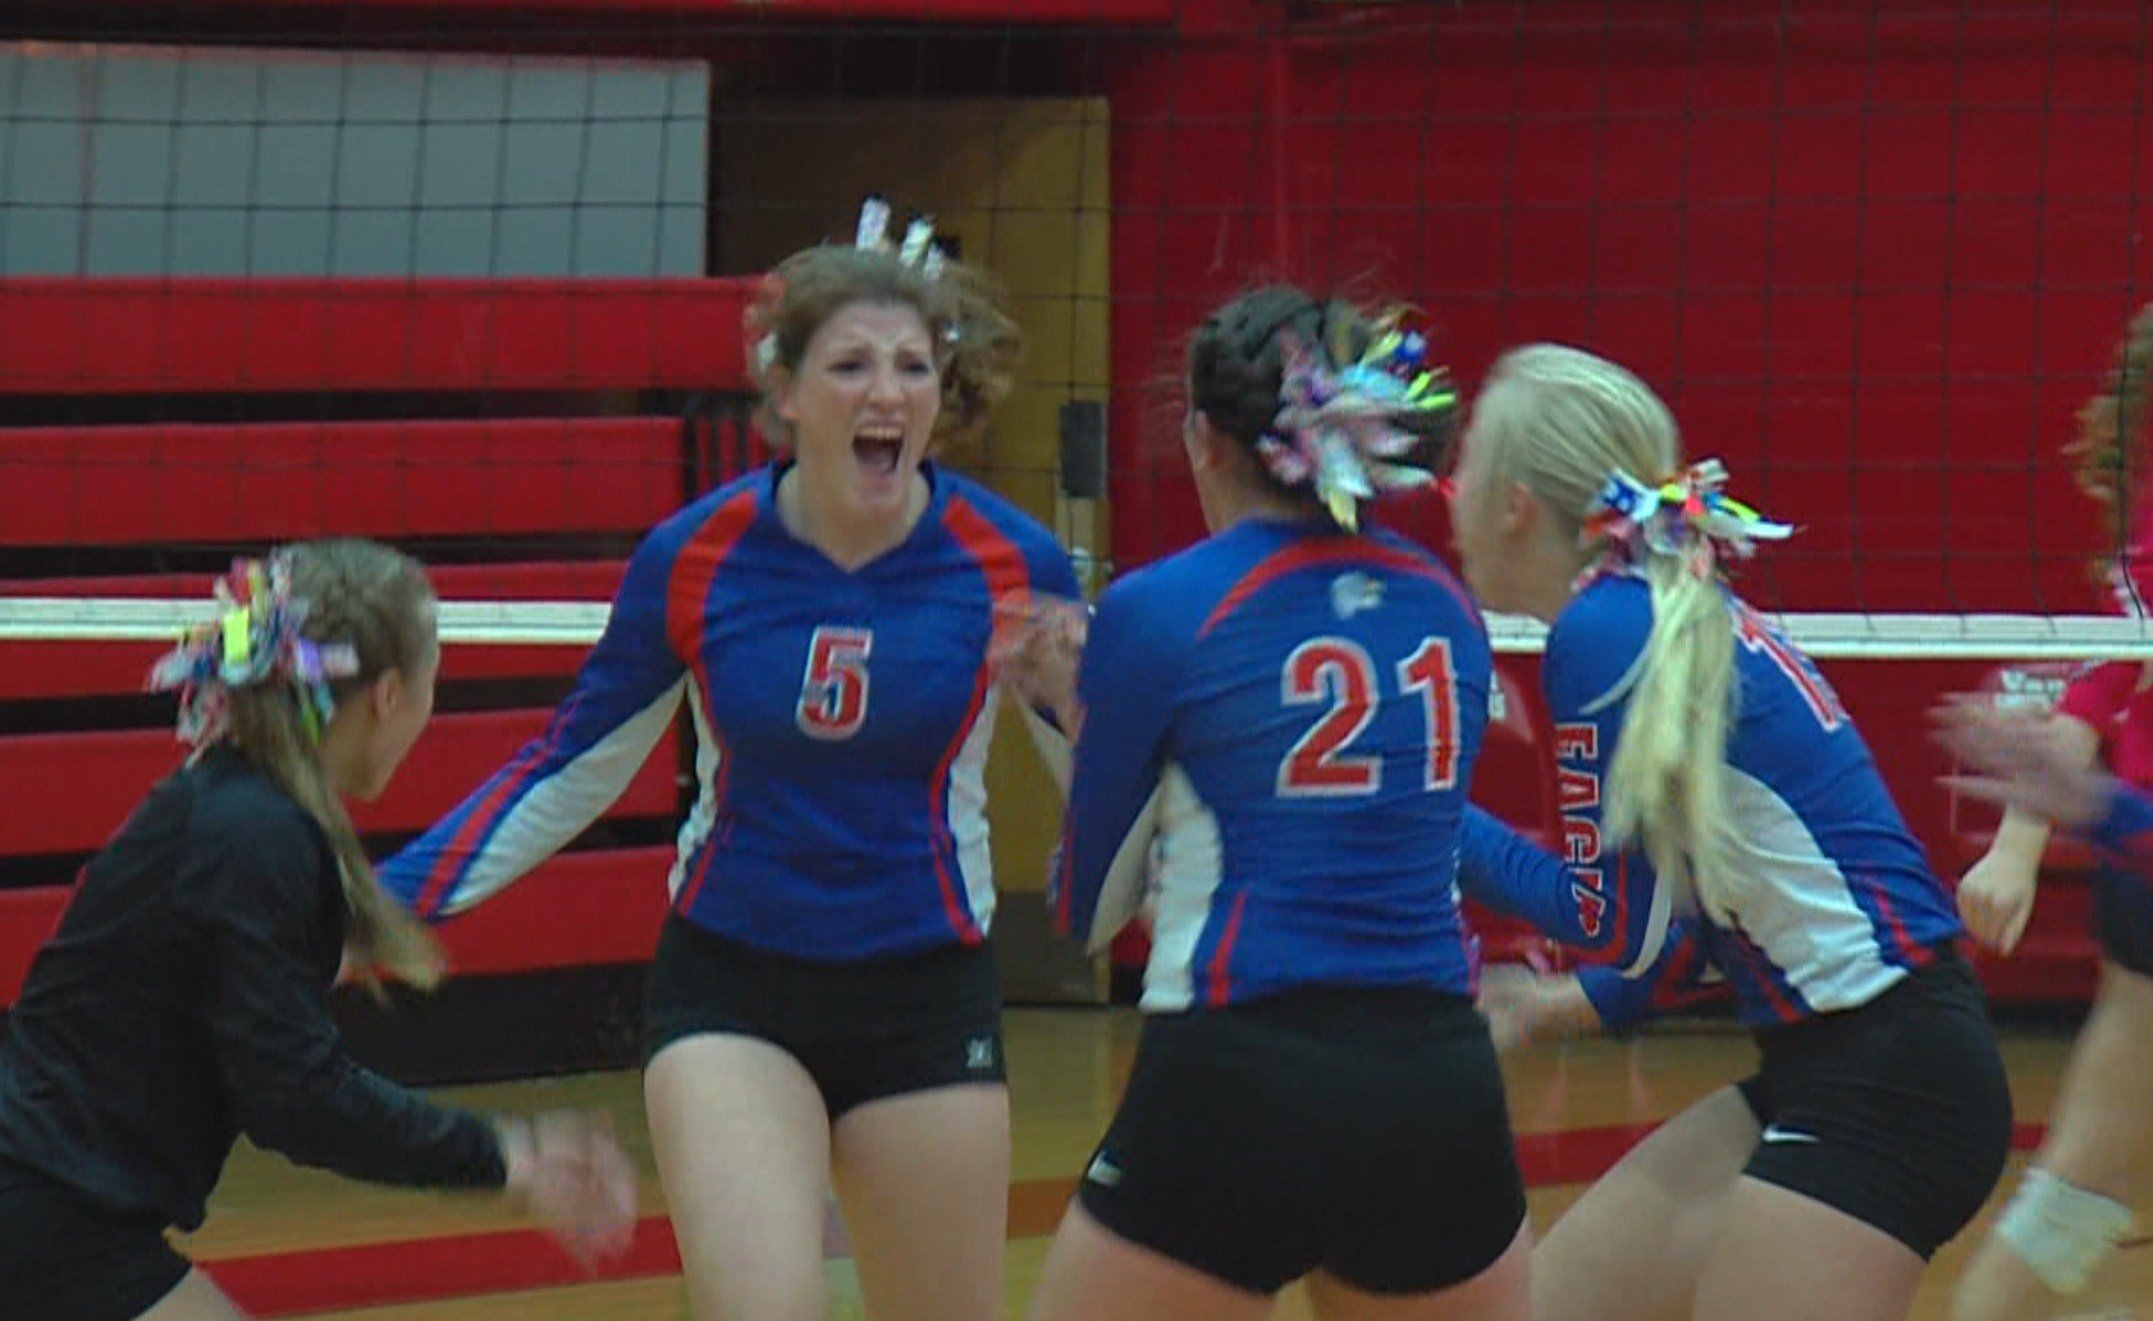 Newton's Renee Probst celebrates with her Eagle teammates in the first game of Friday night's Super-Sectional showdown with Carlinville.